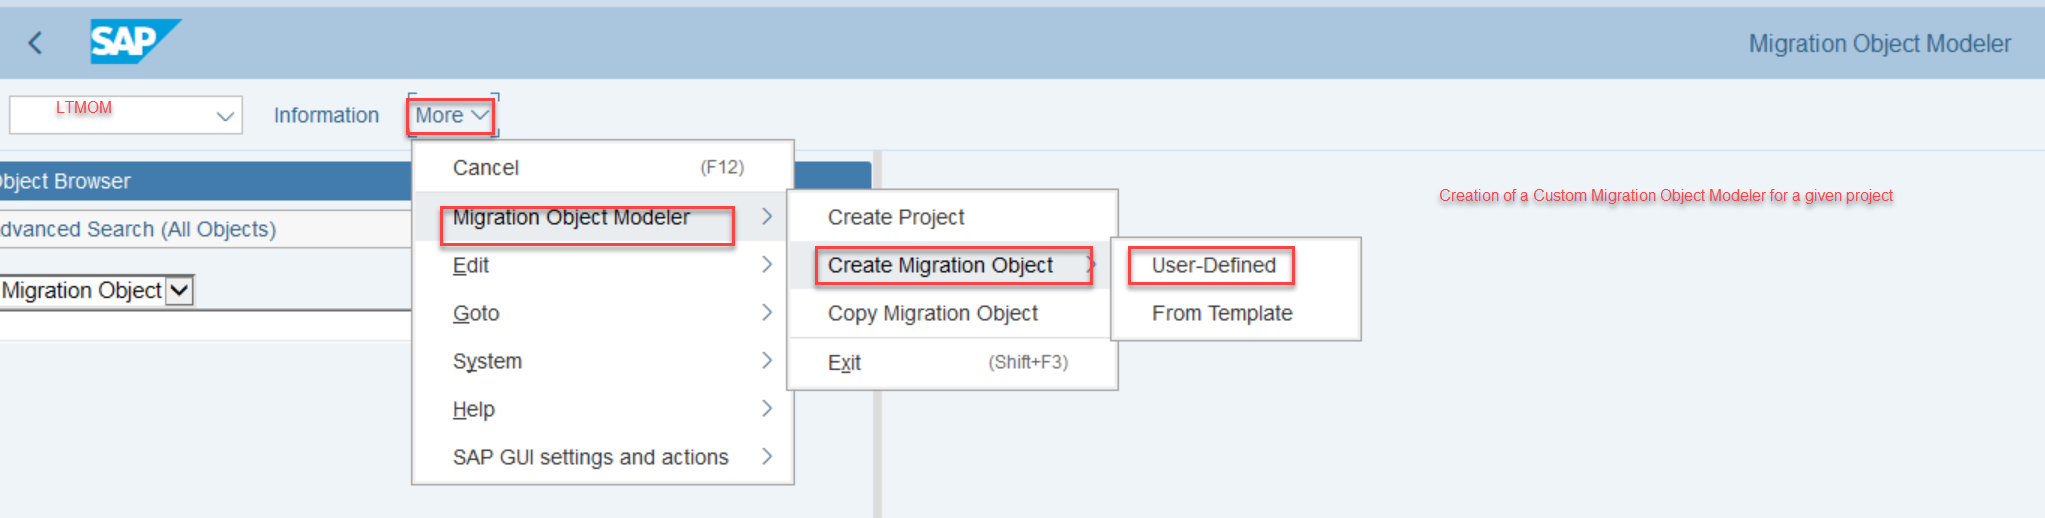 Create%20User-Defined%20Migration%20Object